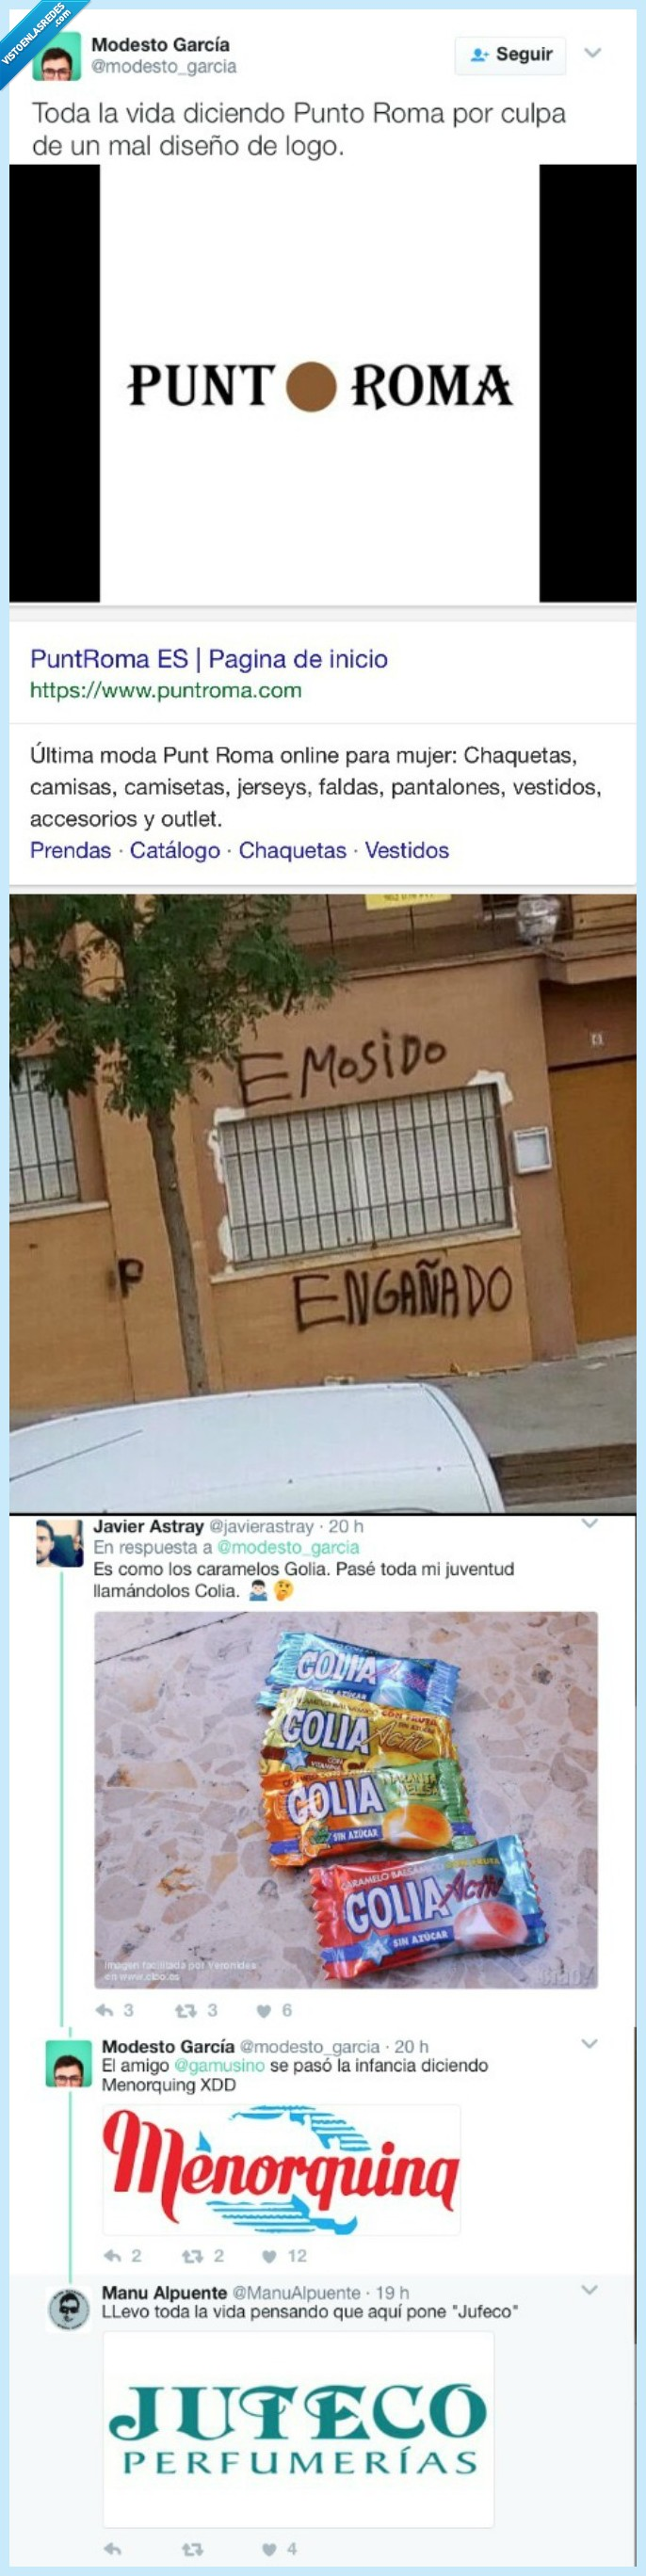 engaño,estafa,marcas